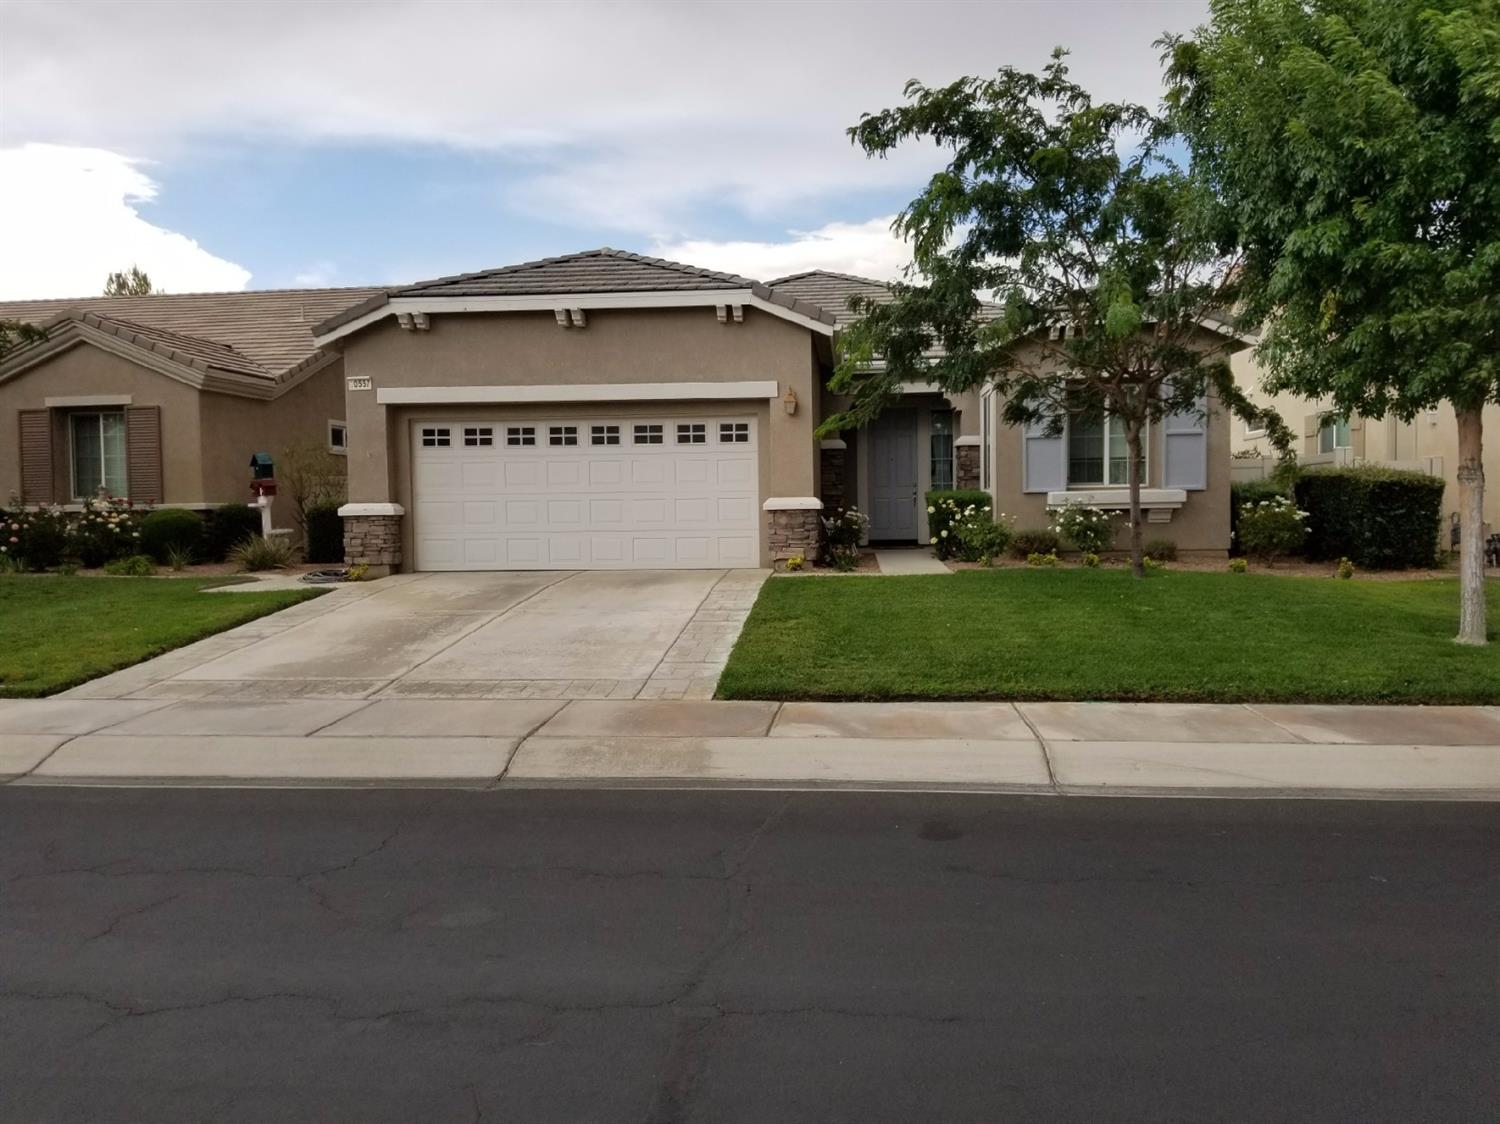 All homes for sale 55places 10557 bridge haven road apple valley ca 92308 malvernweather Choice Image